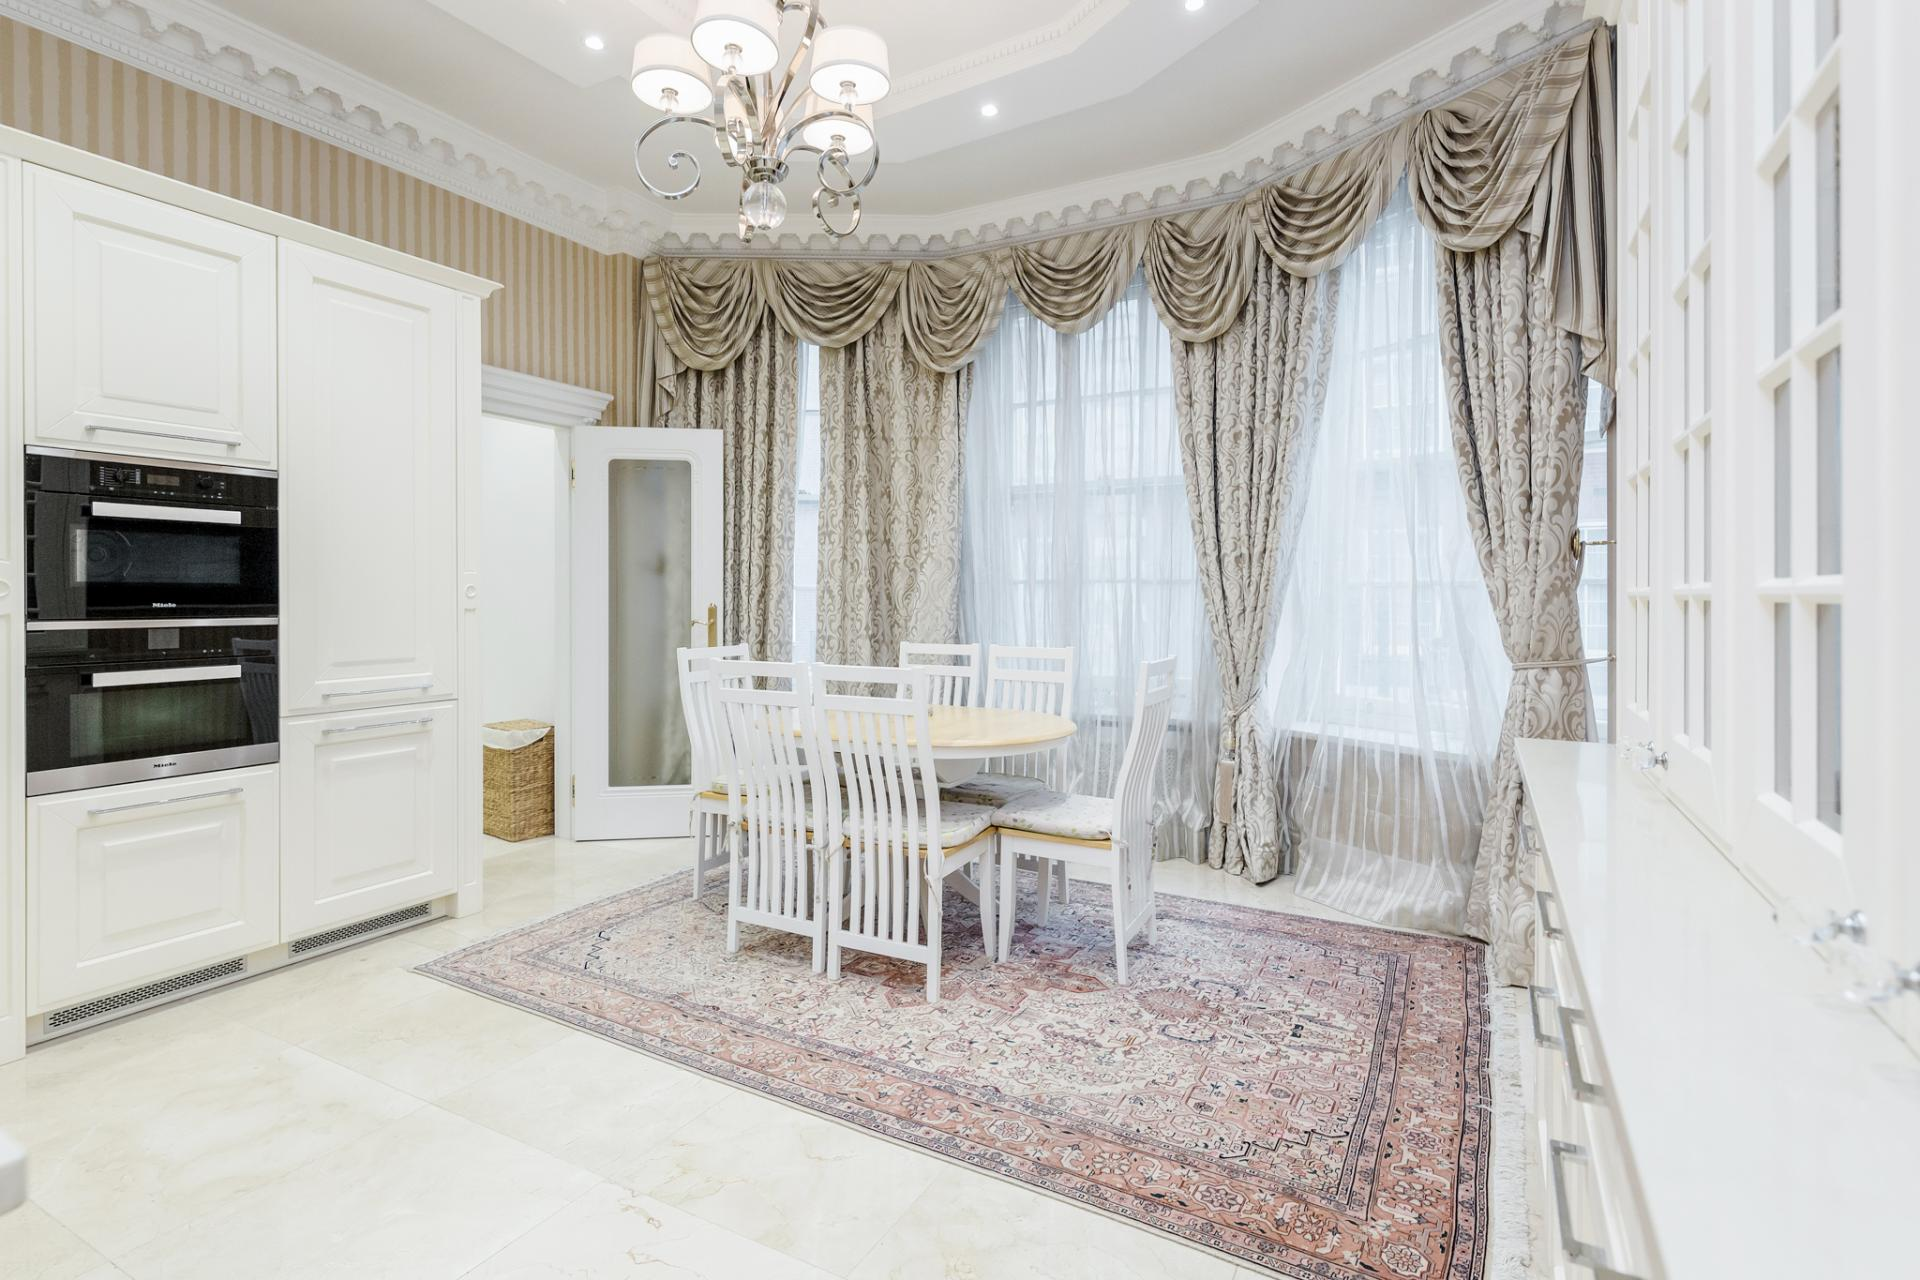 Table at Grosvenor Square Apartment, Mayfair, London